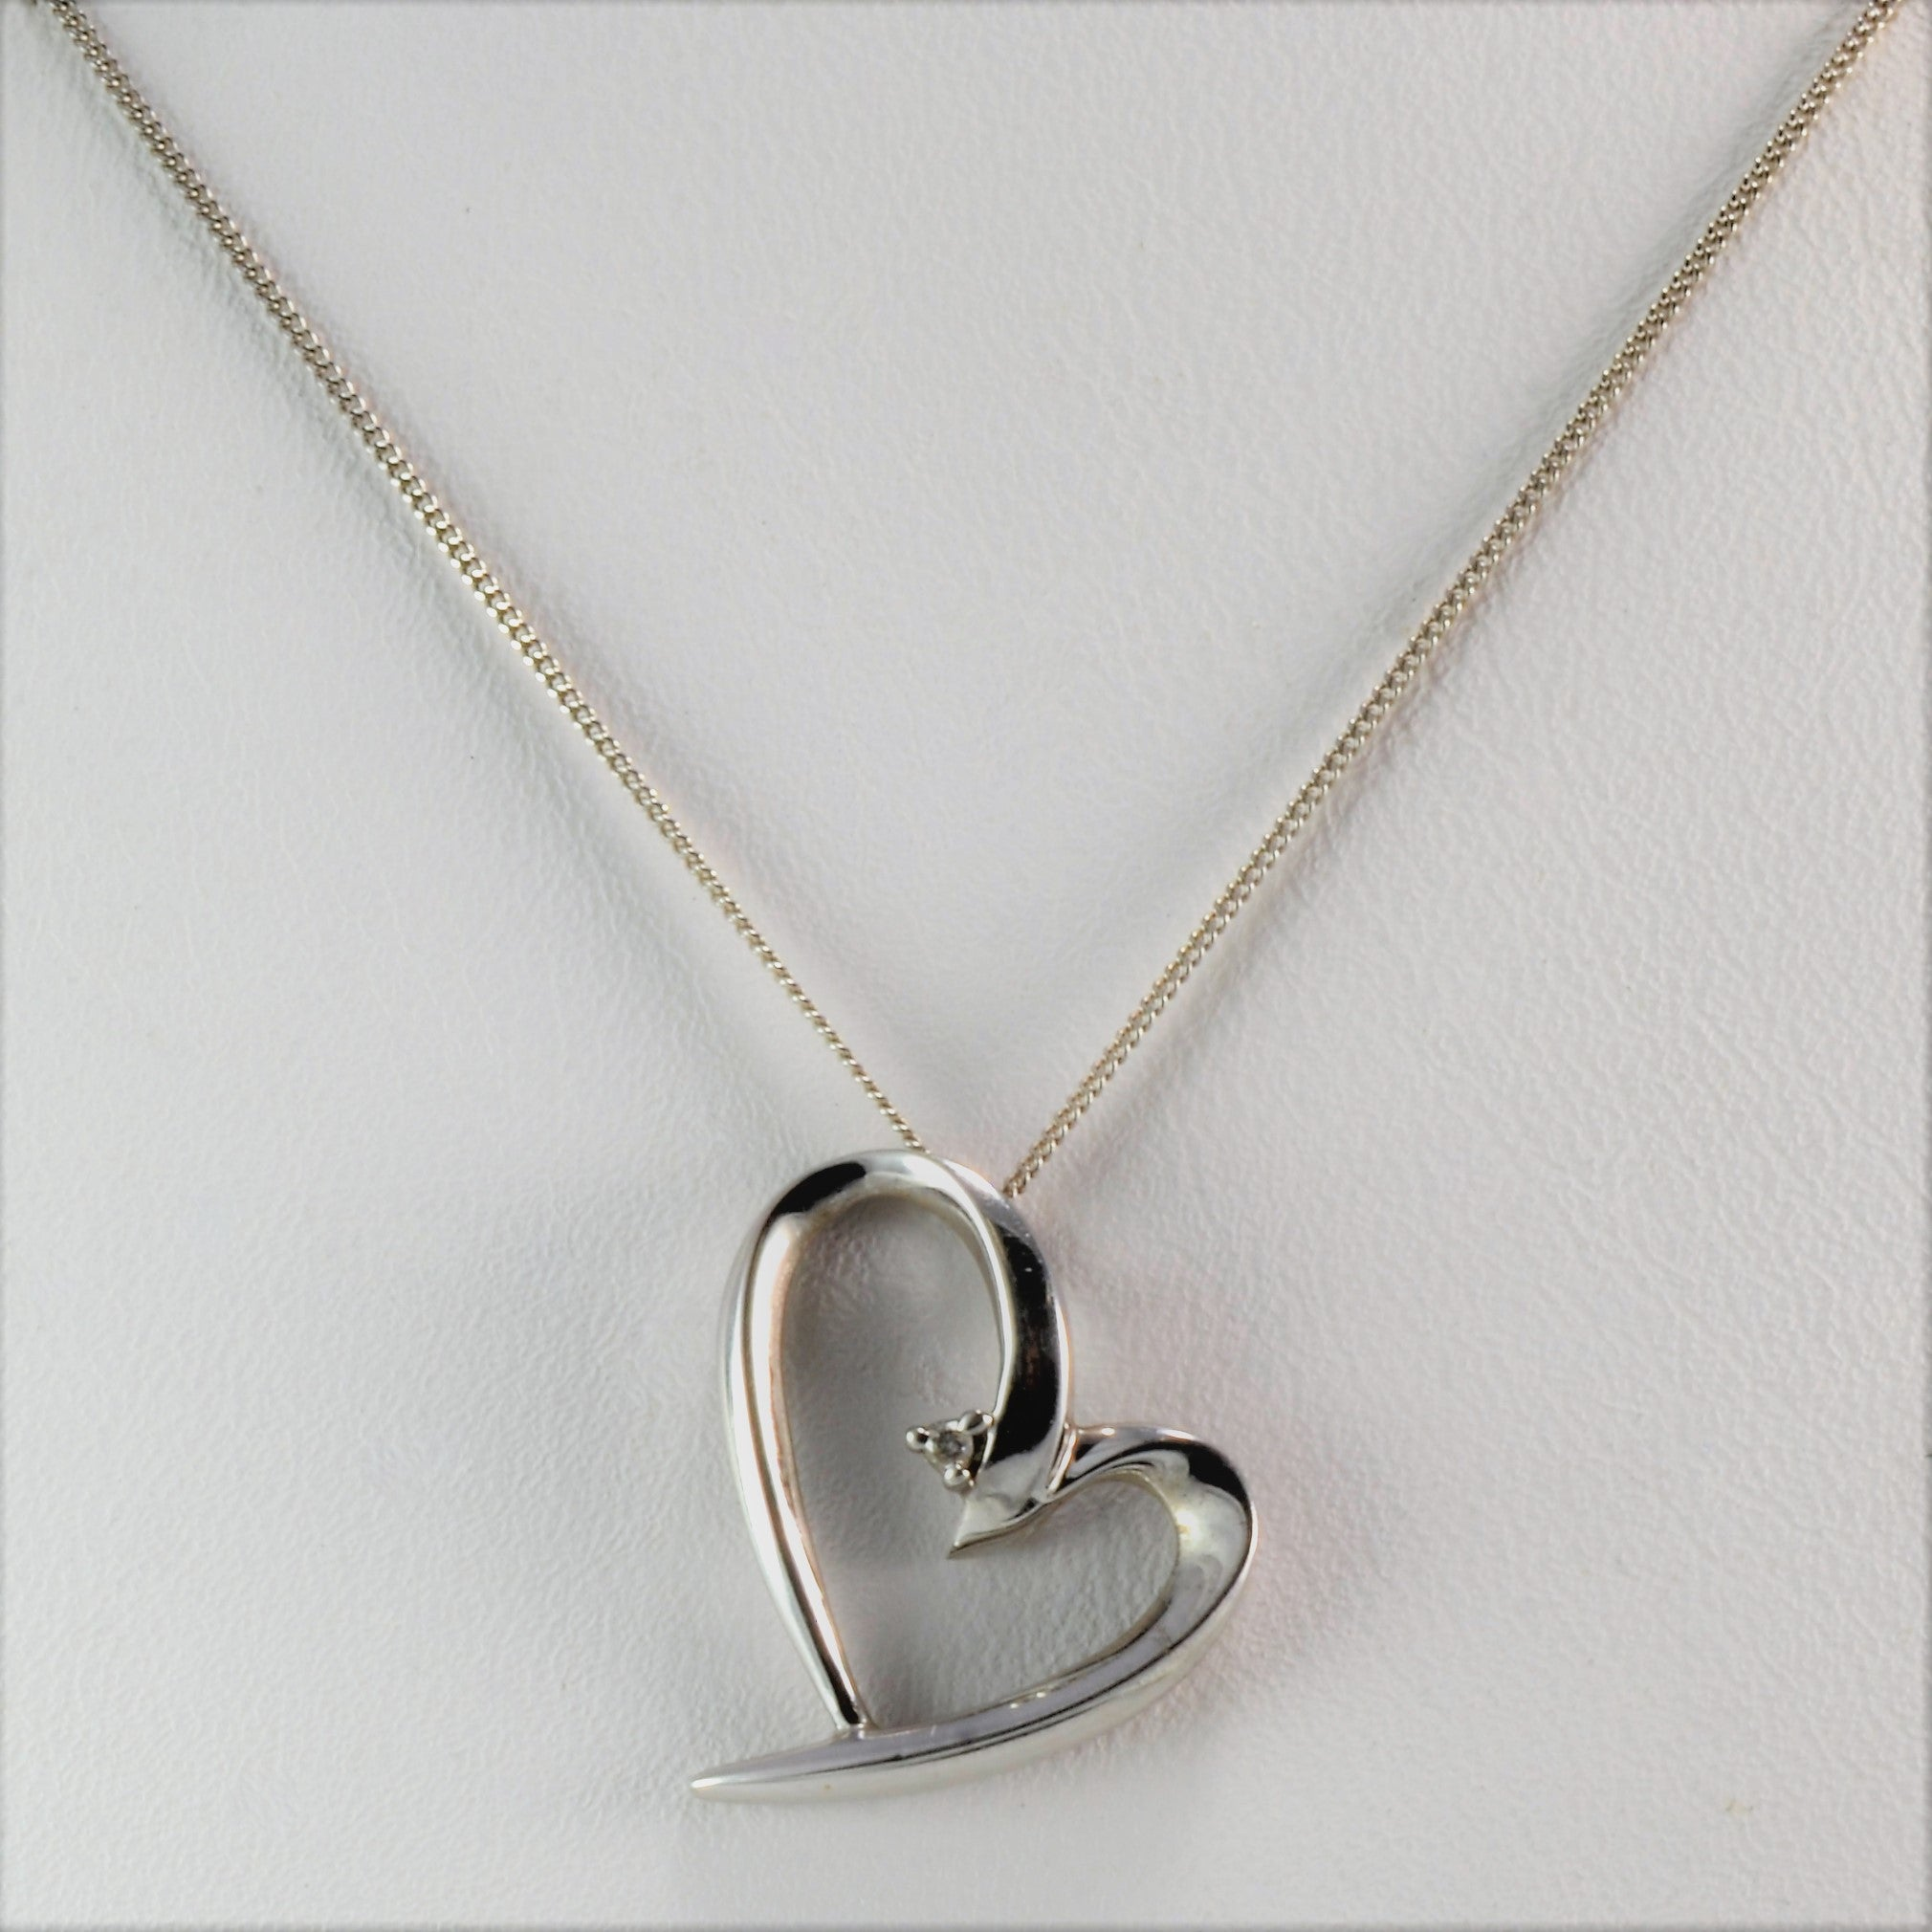 Delicate Diamond Heart Necklace | 0.01 ct, 17"